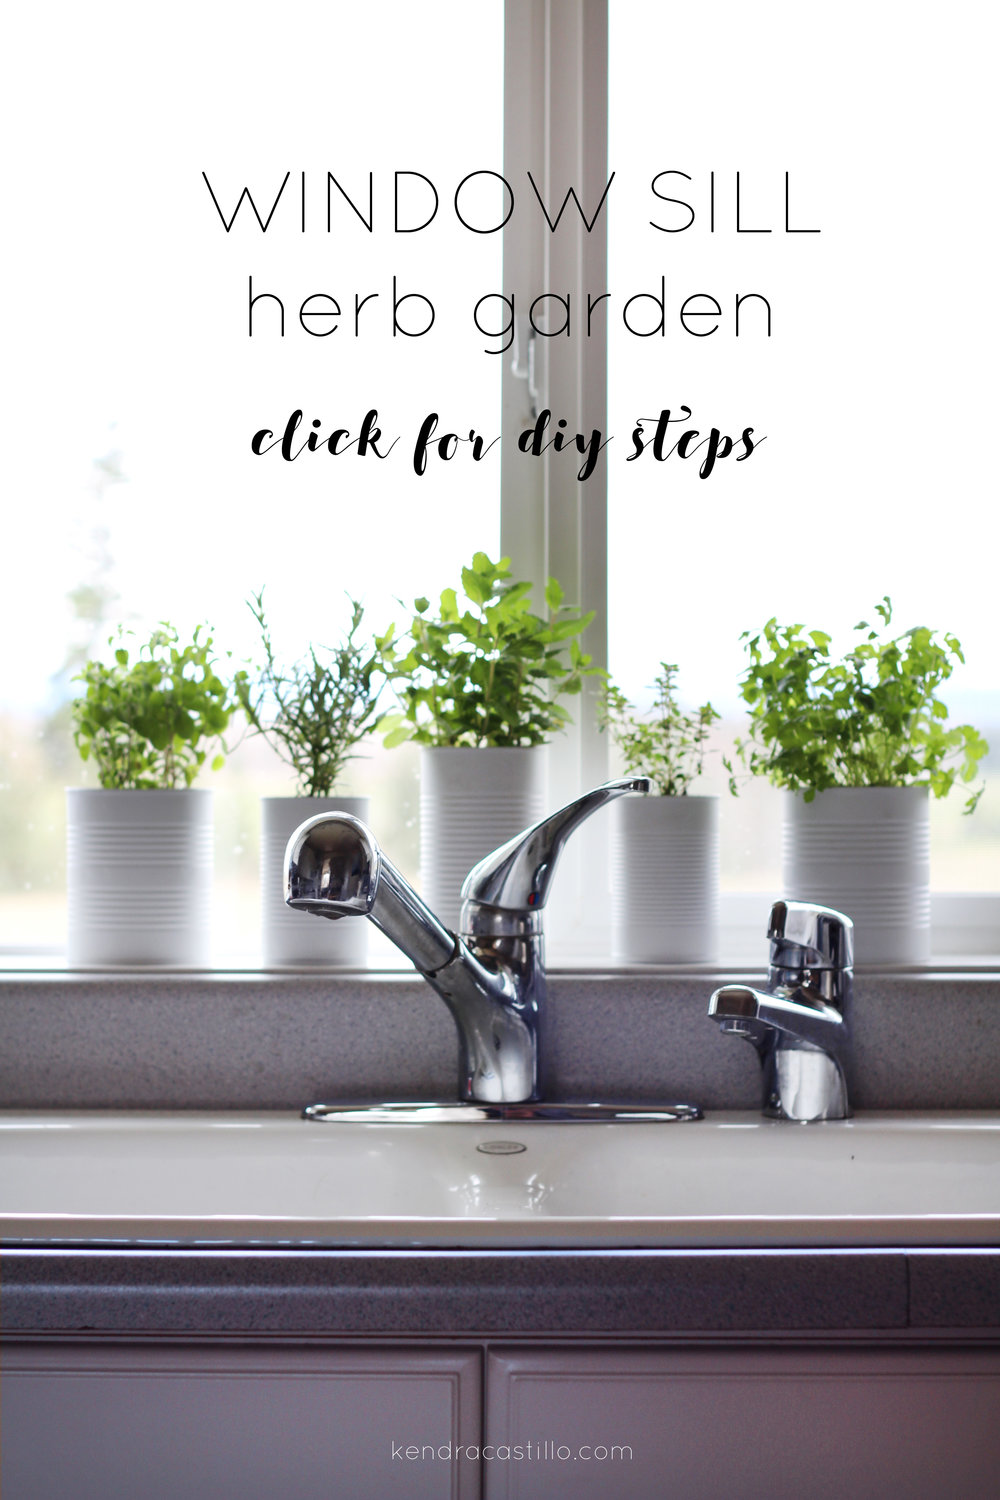 DIY Window Sill Herb Garden | Kendra Castillo